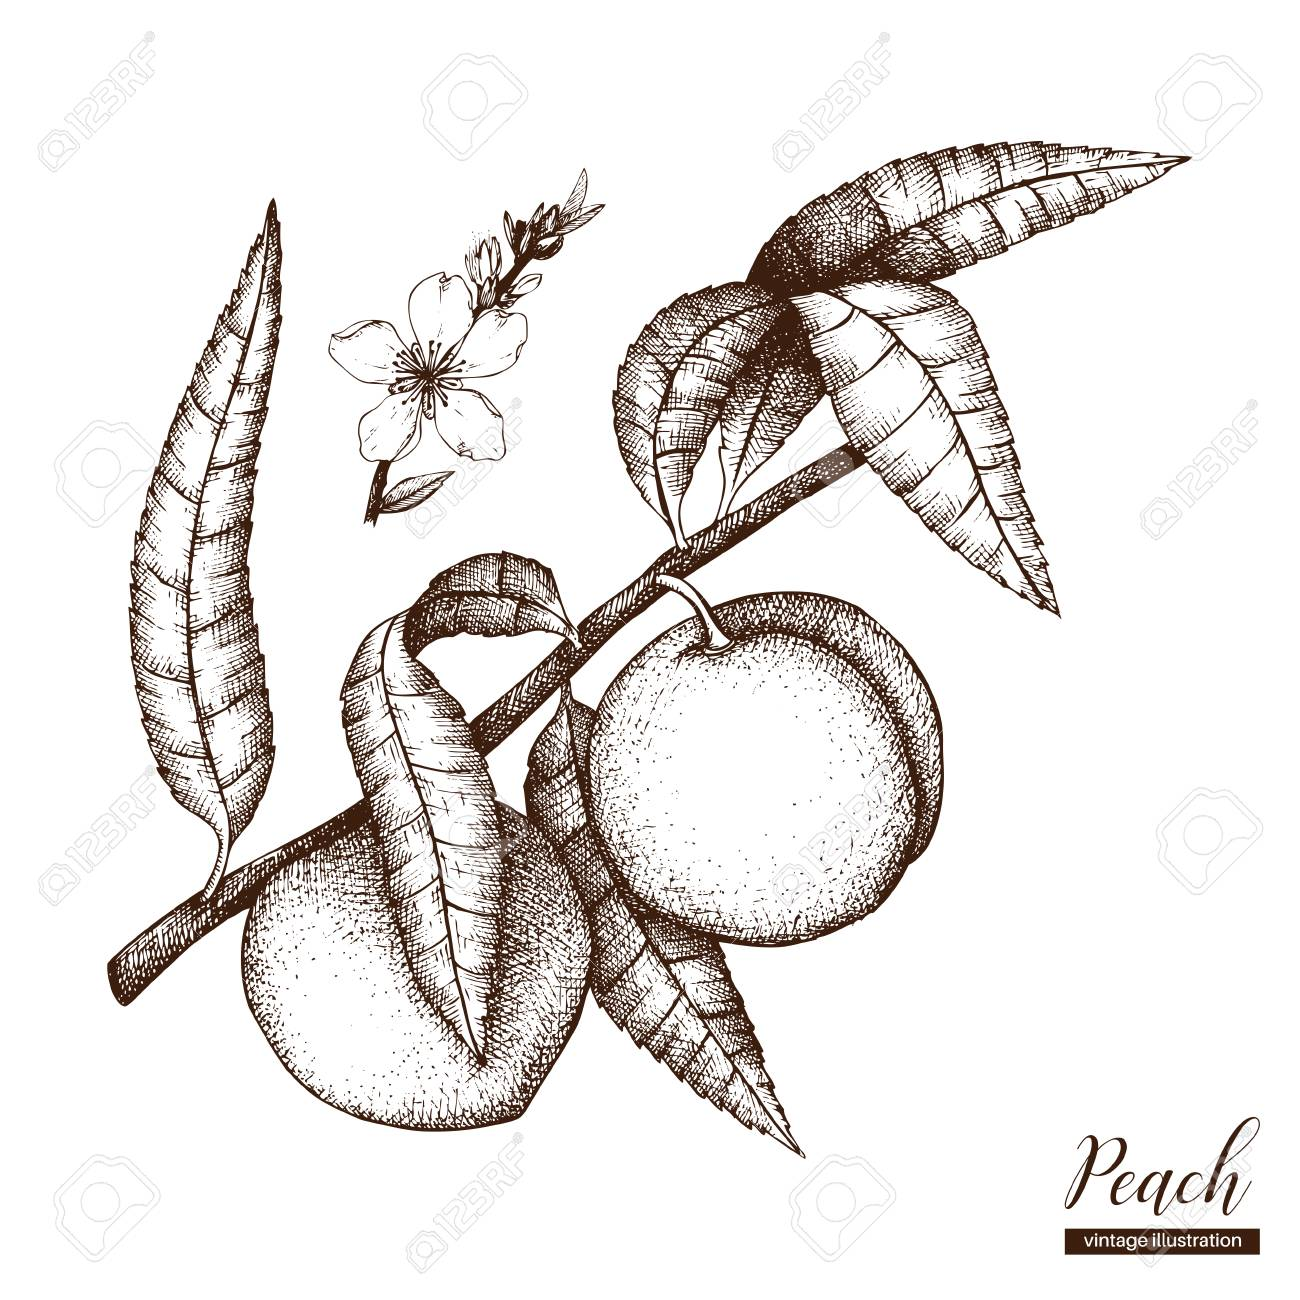 Peach tree drawing at getdrawings free for personal use peach 1300x1300 hand drawn peach tree illustration engraved fruit drawing thecheapjerseys Gallery